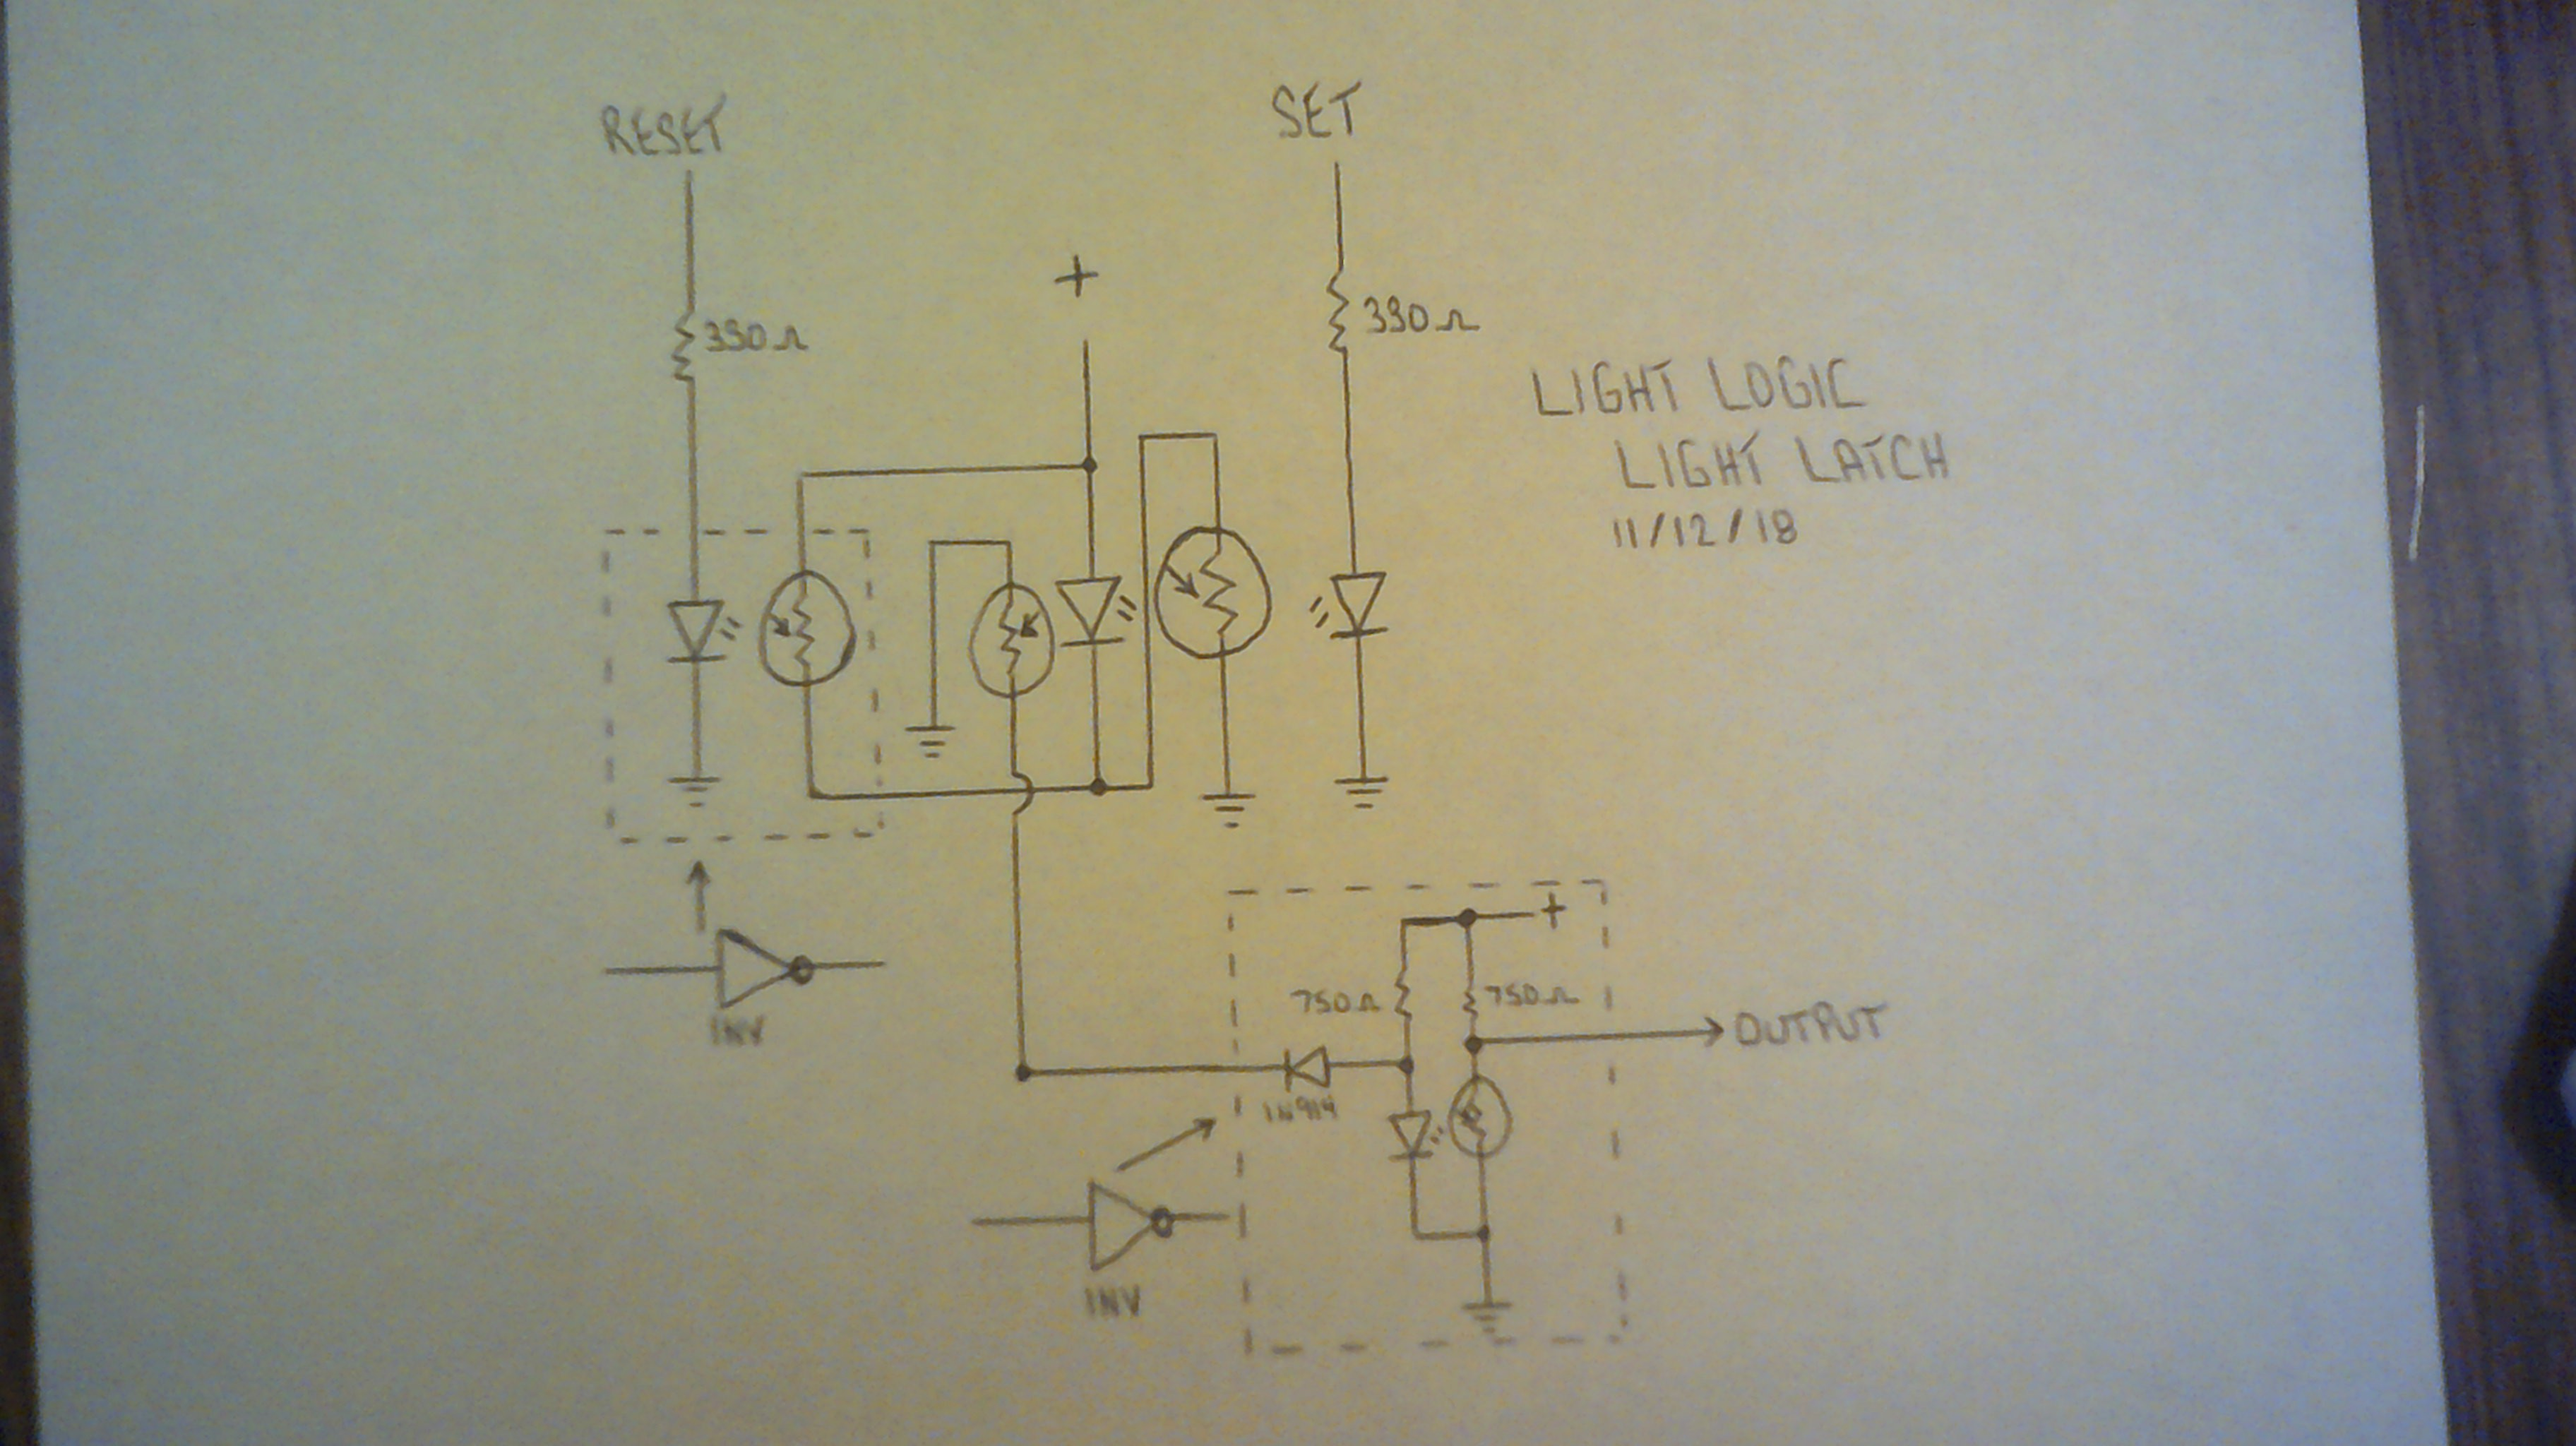 Light Logic Circuit Digram Connecting Seven Segments Led And Ldr View Under The Hood Real Business End Yes Two Leds Ldrs In There